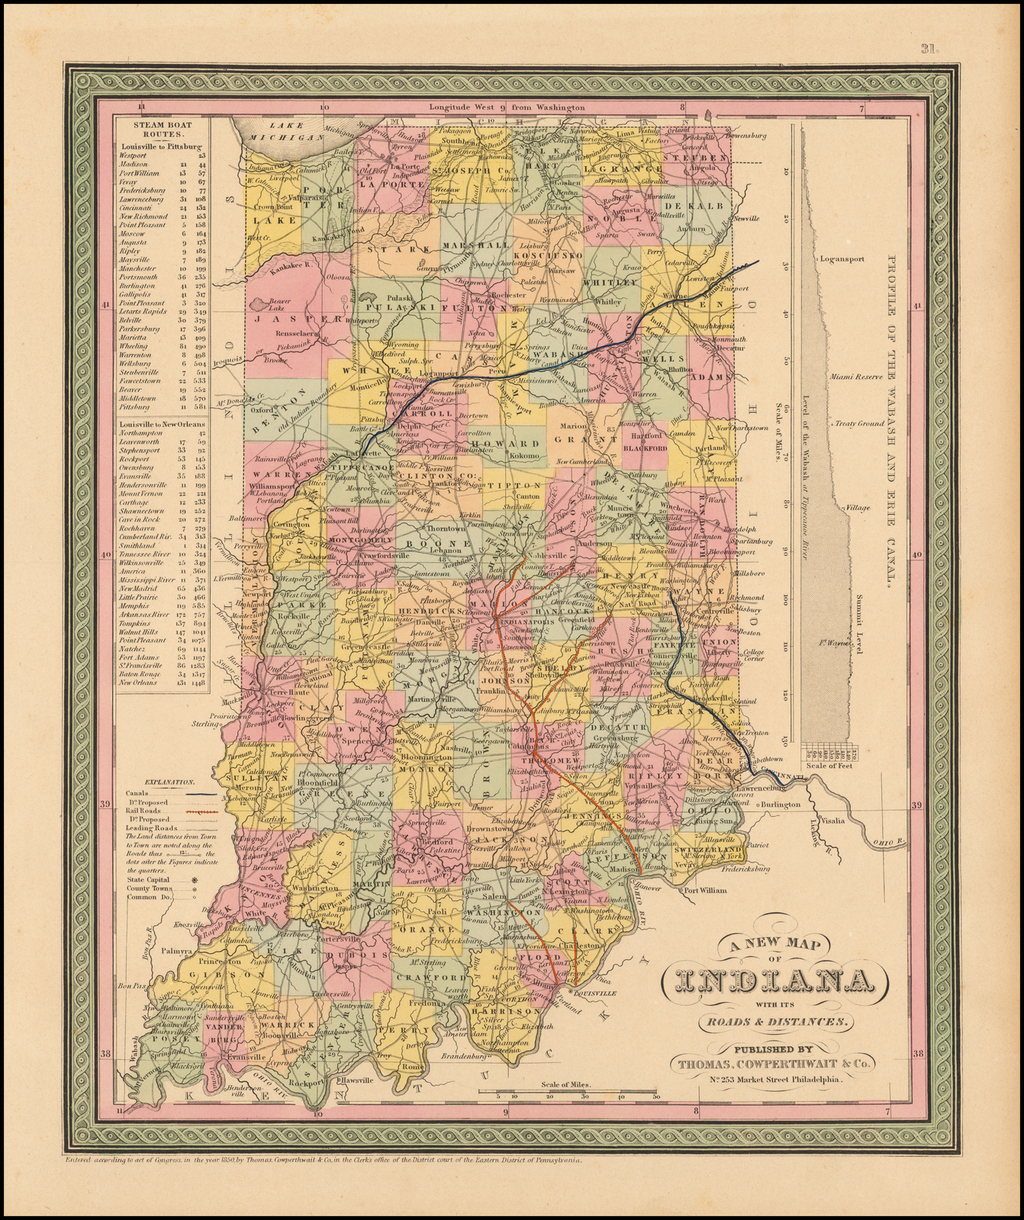 A New Map of Indiana with its Roads & Distances. Published By Thomas, Cowperthwait Co. By Thomas, Cowperthwait & Co.